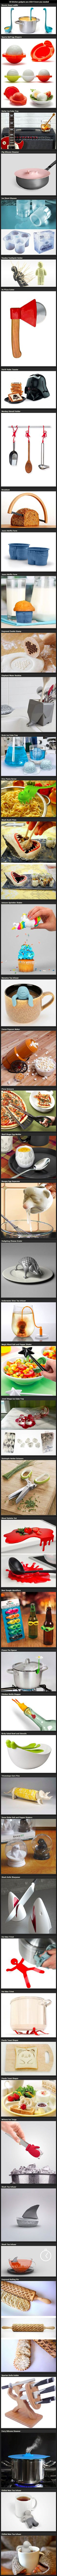 I think the hot man trivet and shark knife sharpener are a must for me. - 43 Kitchen Gadgets You Never Knew You Needed home cool kitchen interesting homes cooking technology kitchen ideas gadgets gadget New Kitchen Gadgets, Home Gadgets, Cooking Gadgets, Gadgets And Gizmos, Clever Gadgets, Spy Gadgets, Electronics Gadgets, Best Upright Vacuum, Vacuum Reviews